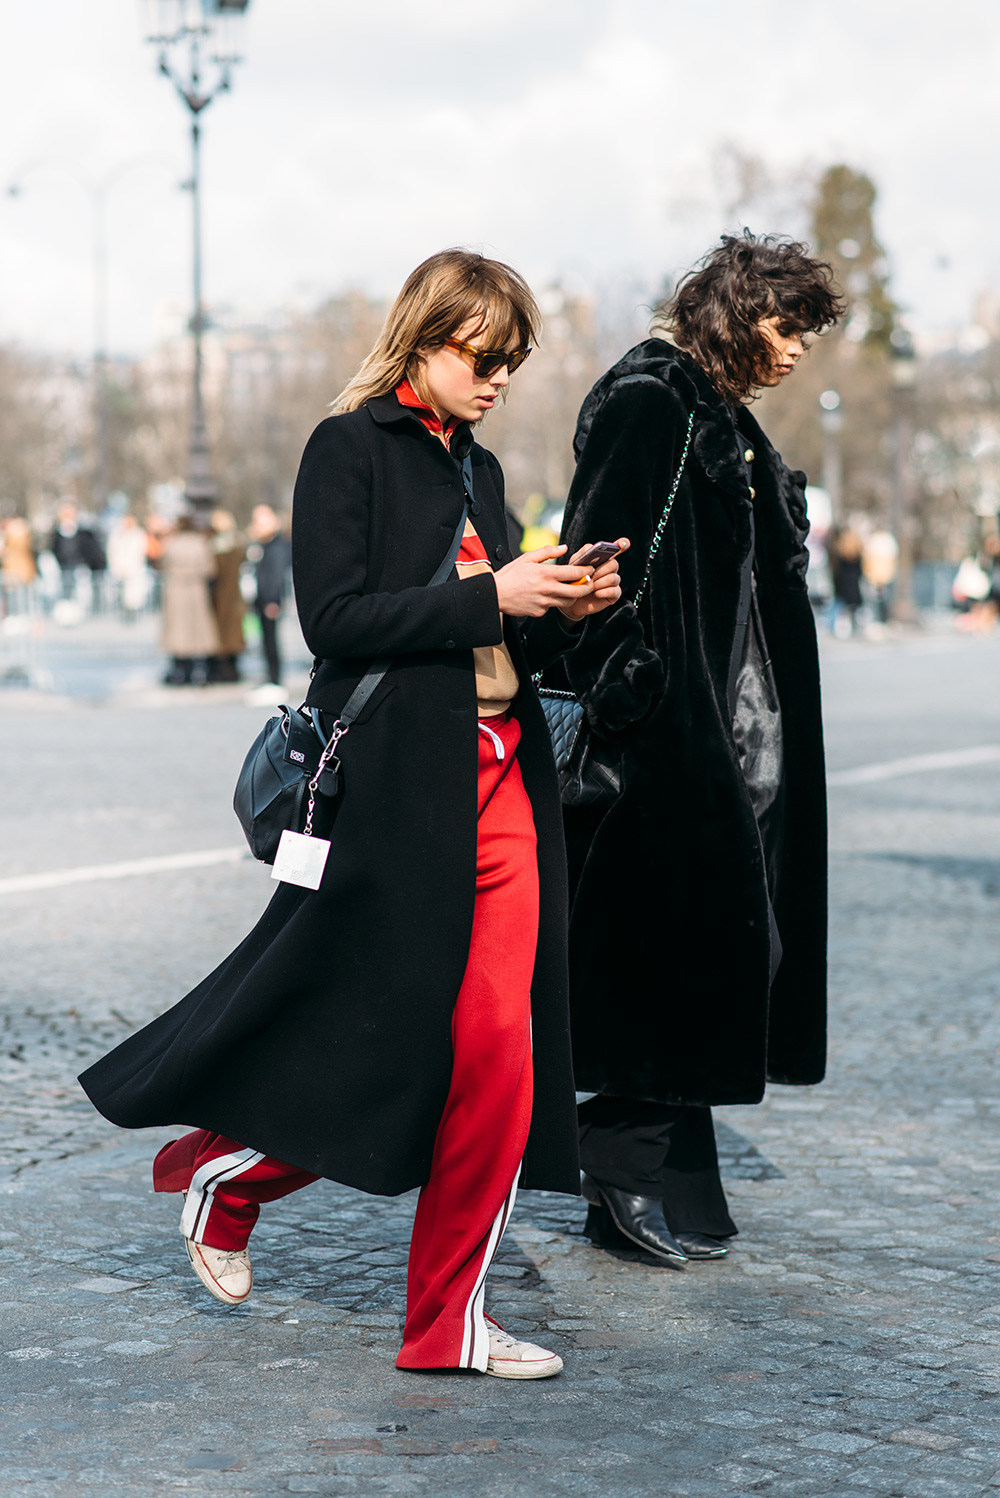 paris-fashion-week-streetstyle-by-the-petticoat-eddie-campbell-and-mica-arganaz-models-after-chanel-show-paris-pfw